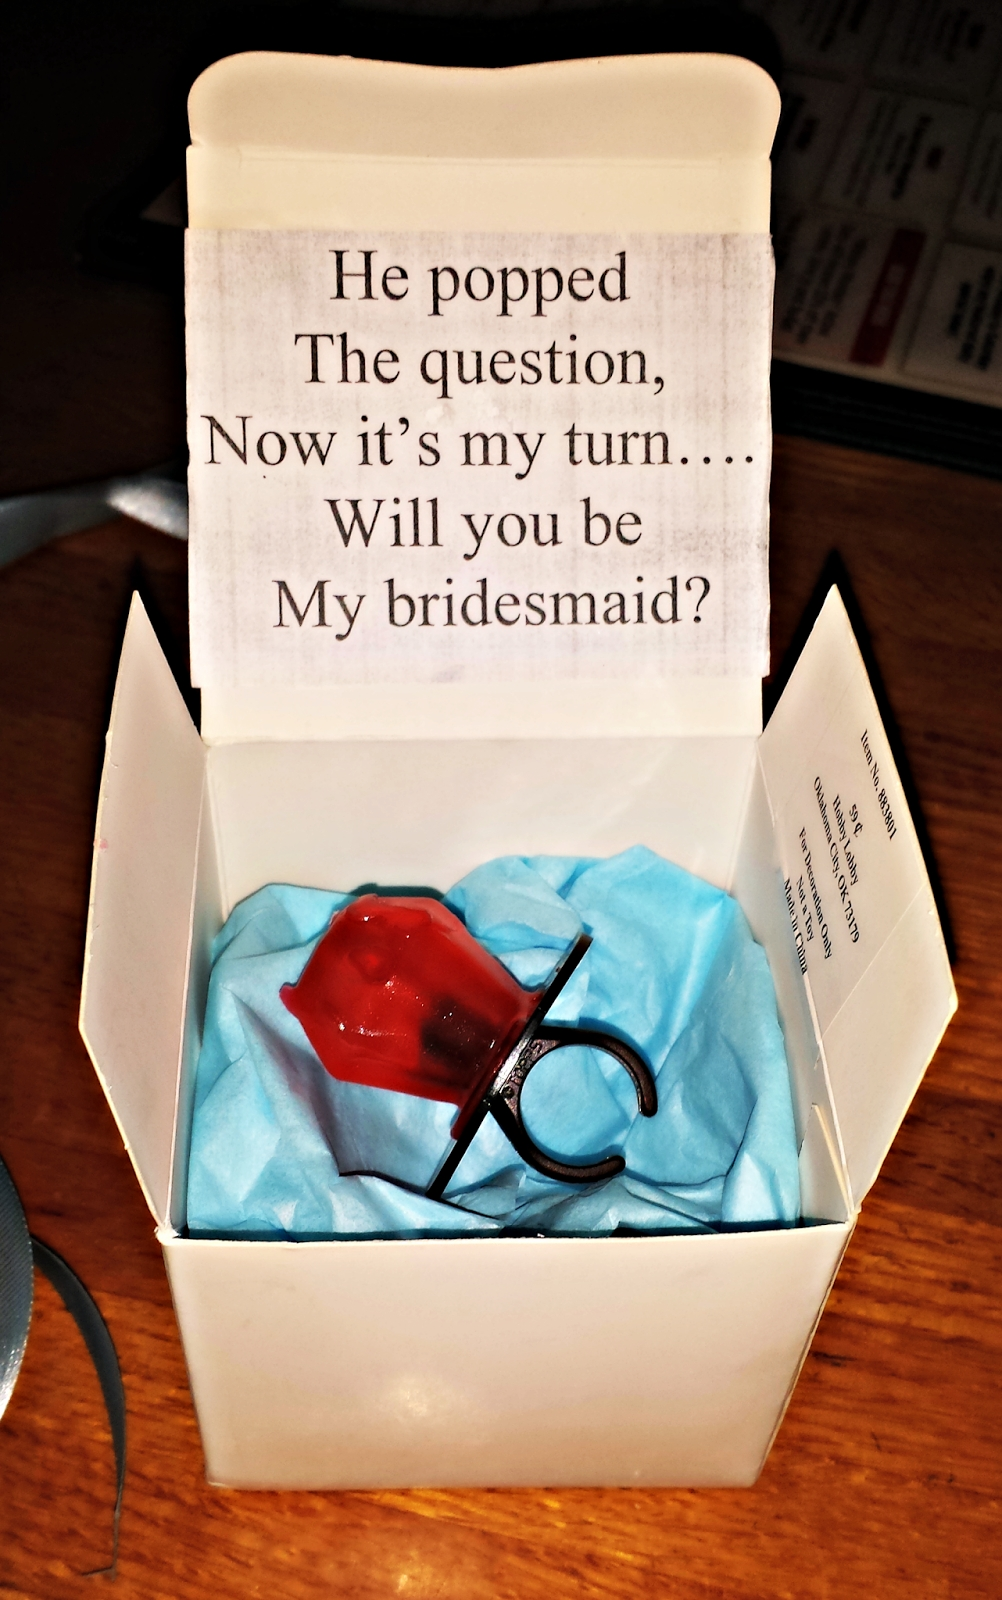 10 Cute How To Ask Bridesmaids Ideas he popped the questionnow its my turn will you be my bridesmaid 3 2020